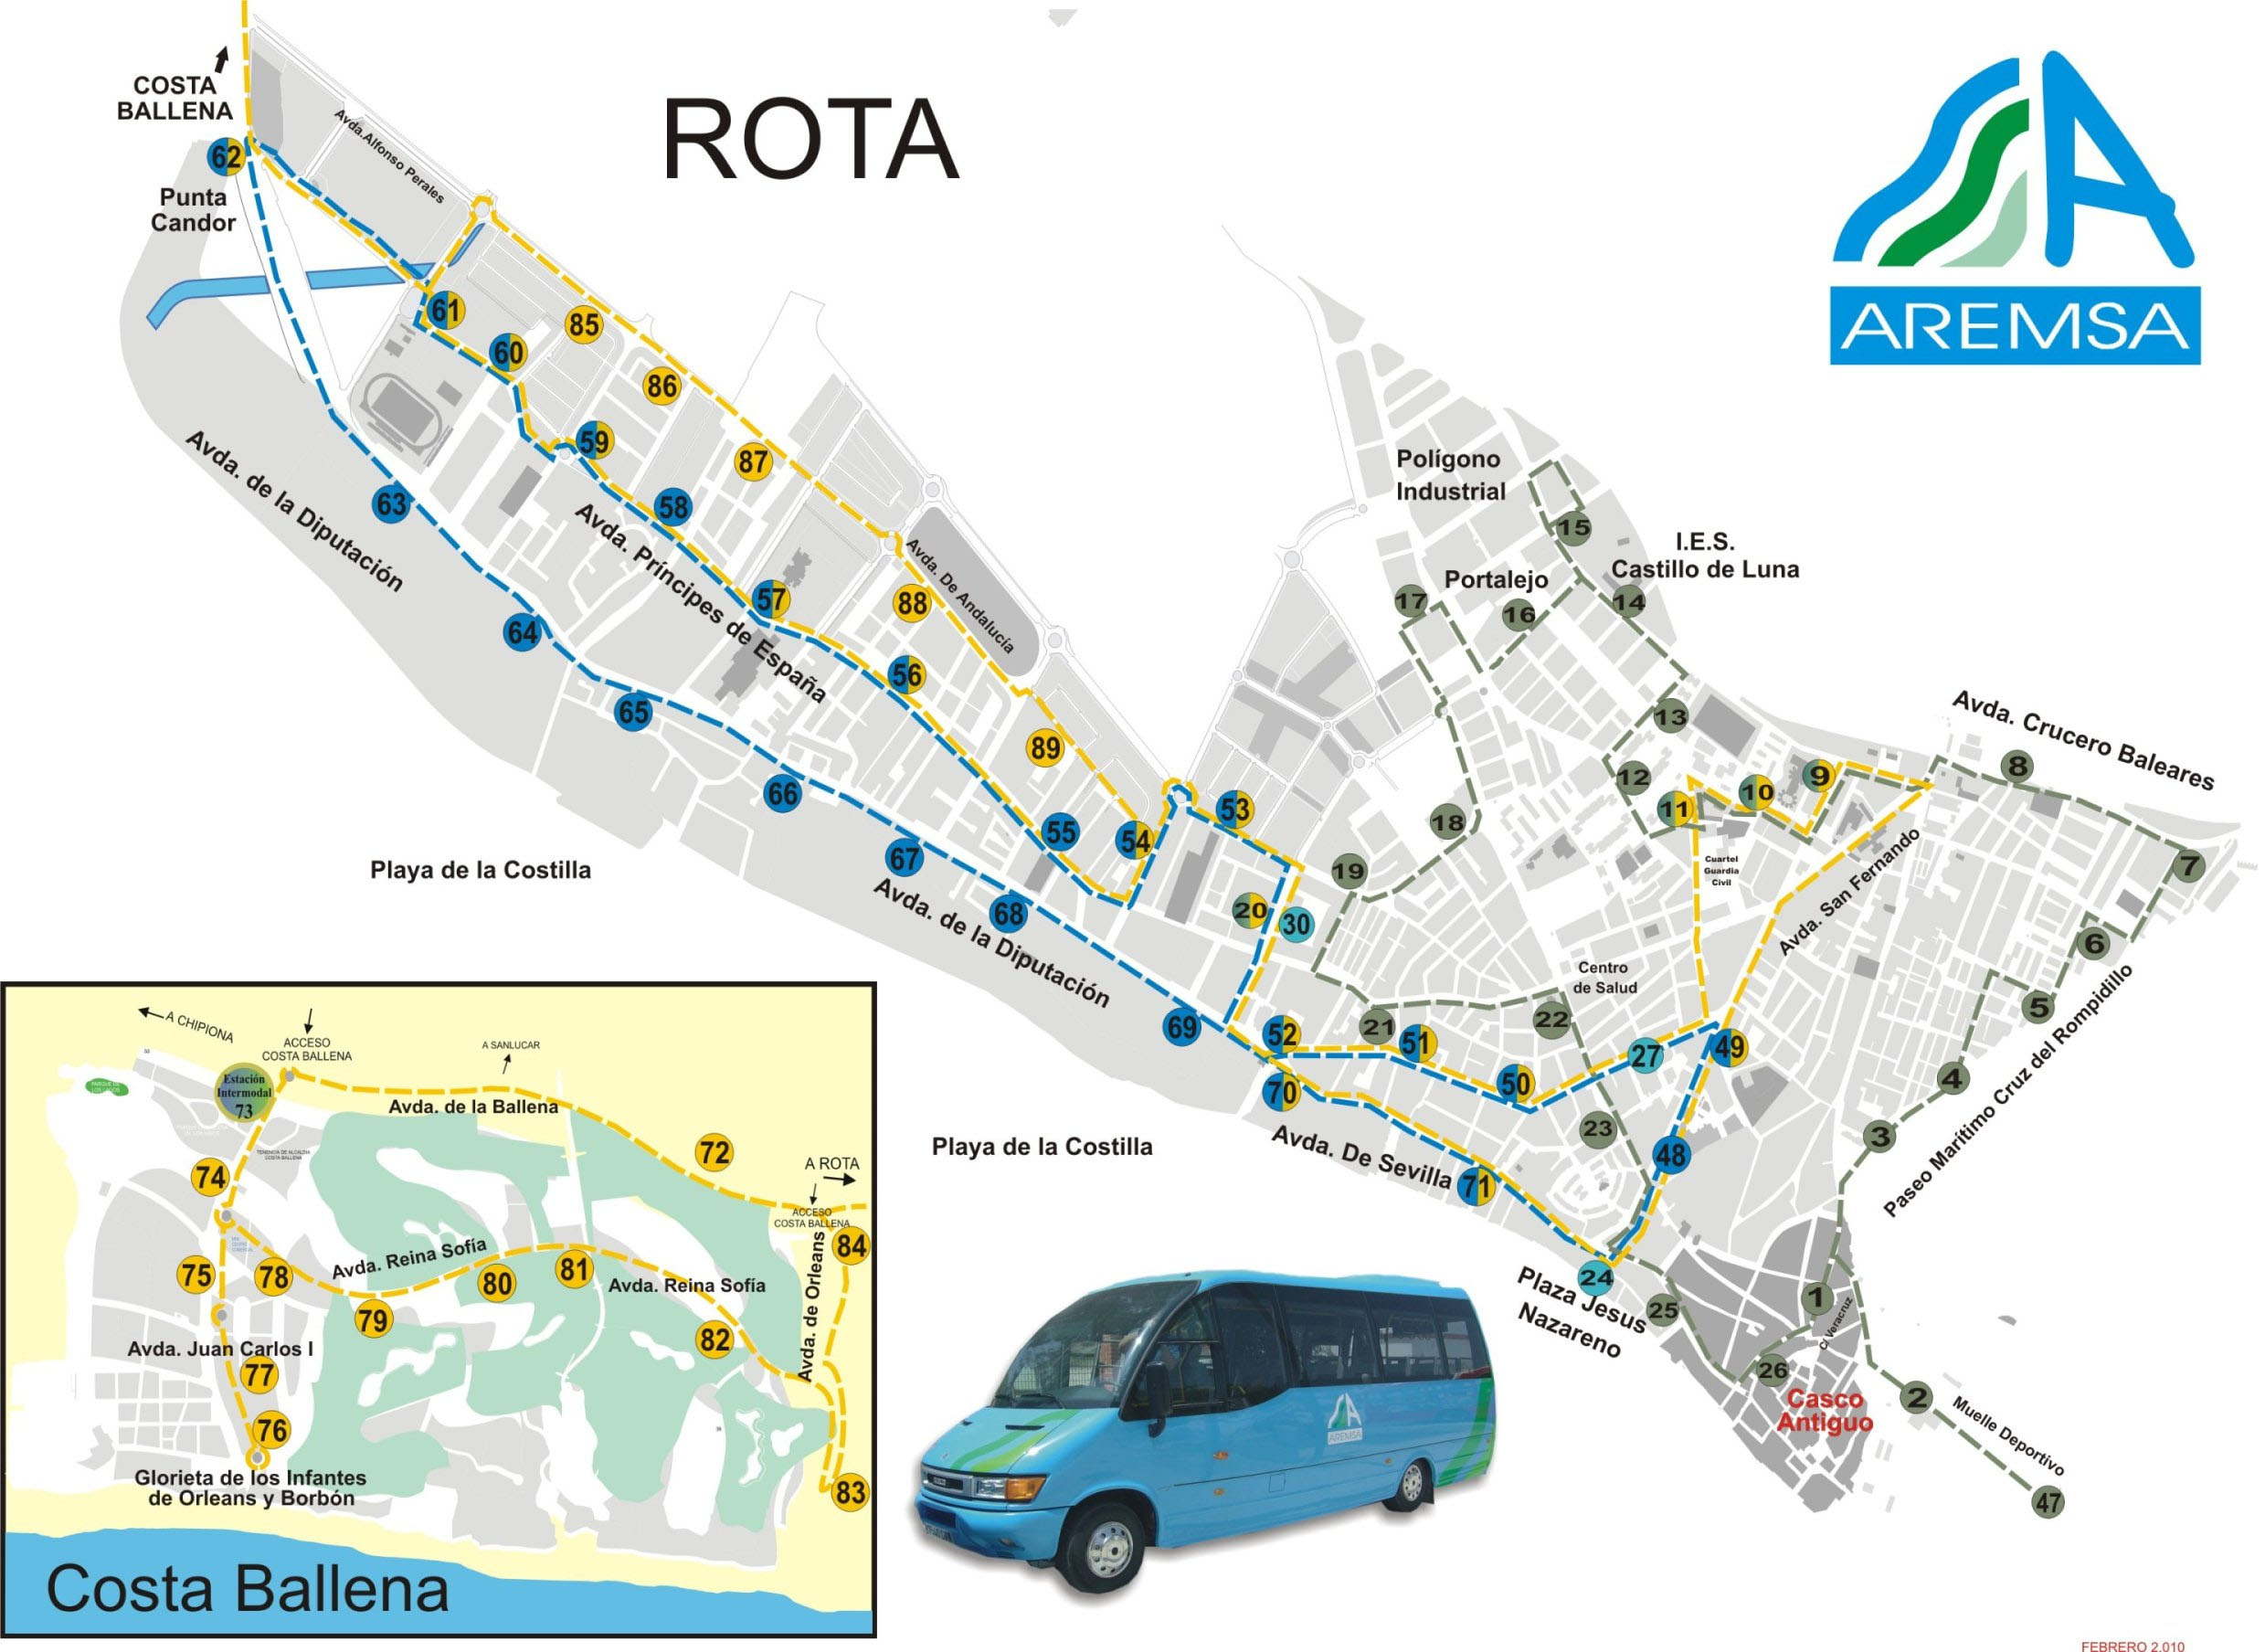 Location map of bus stops in Rota